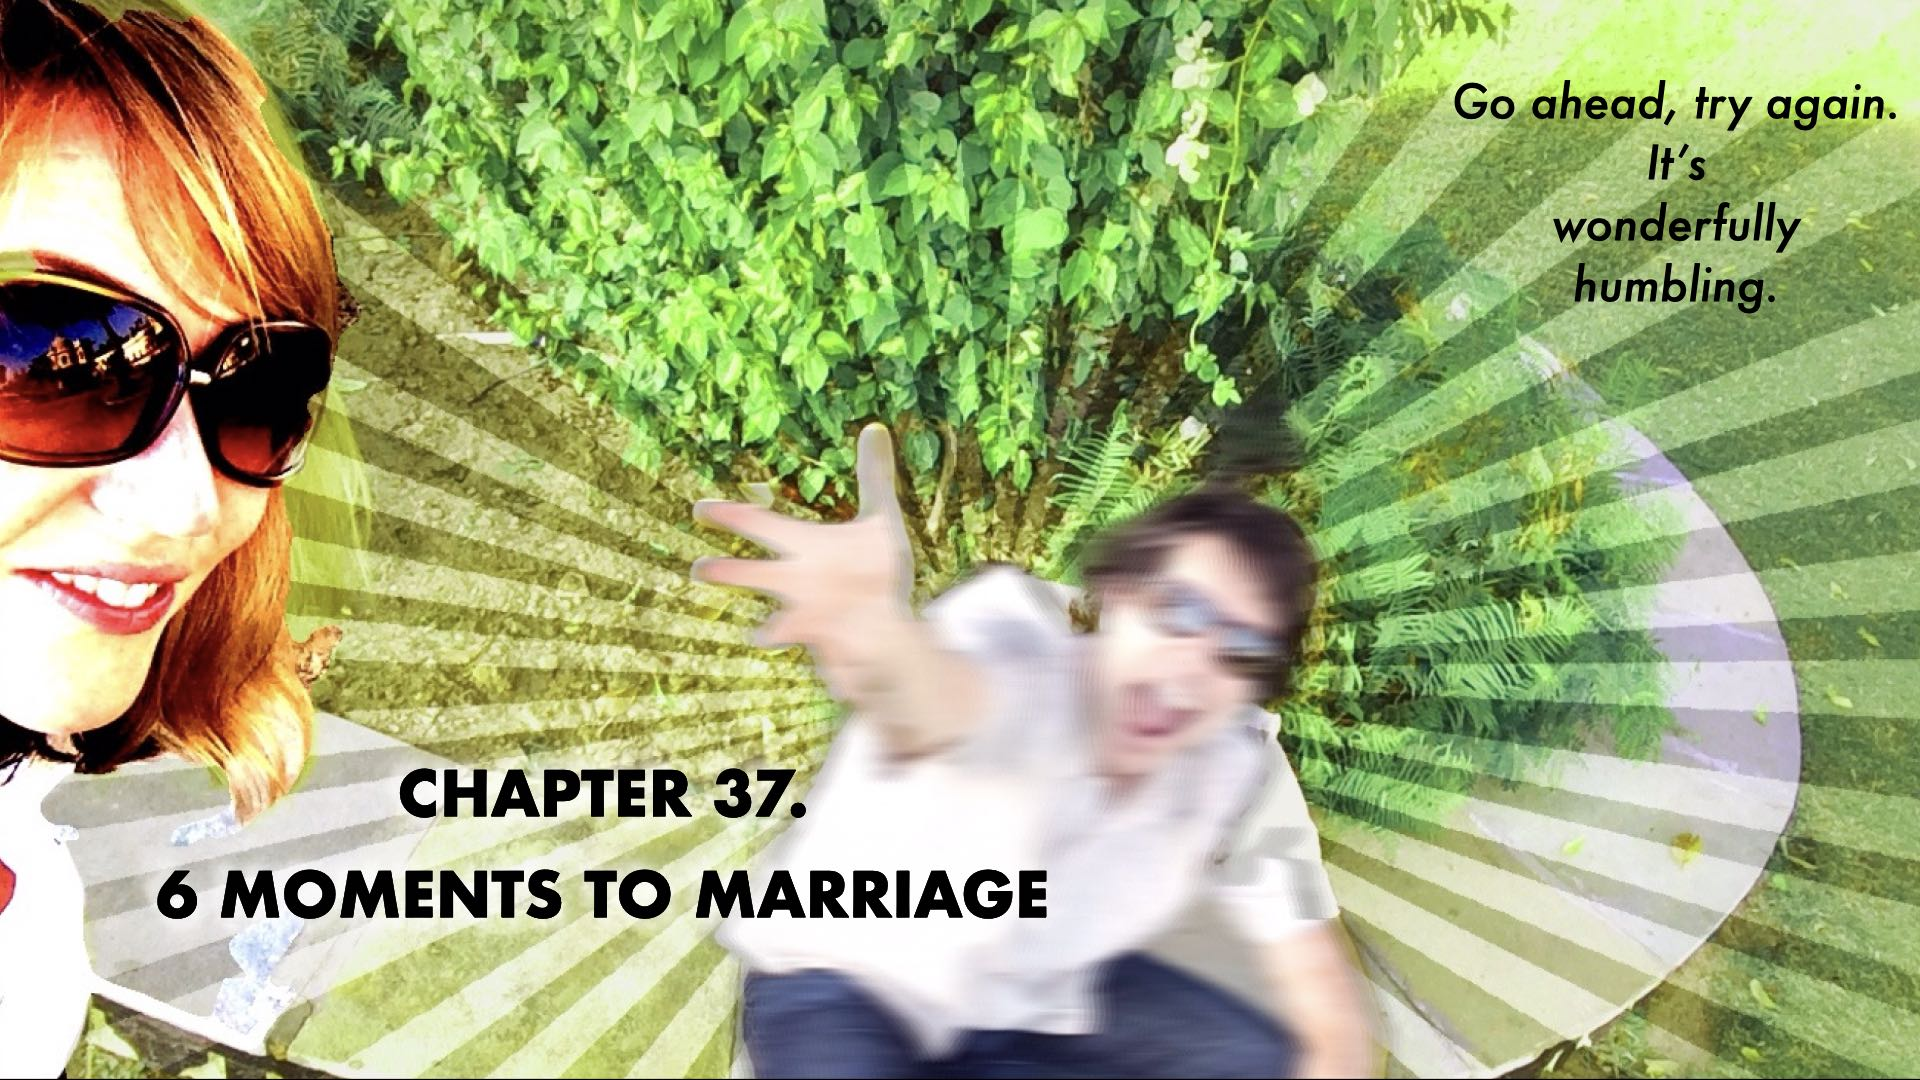 6 Moments to Marriage